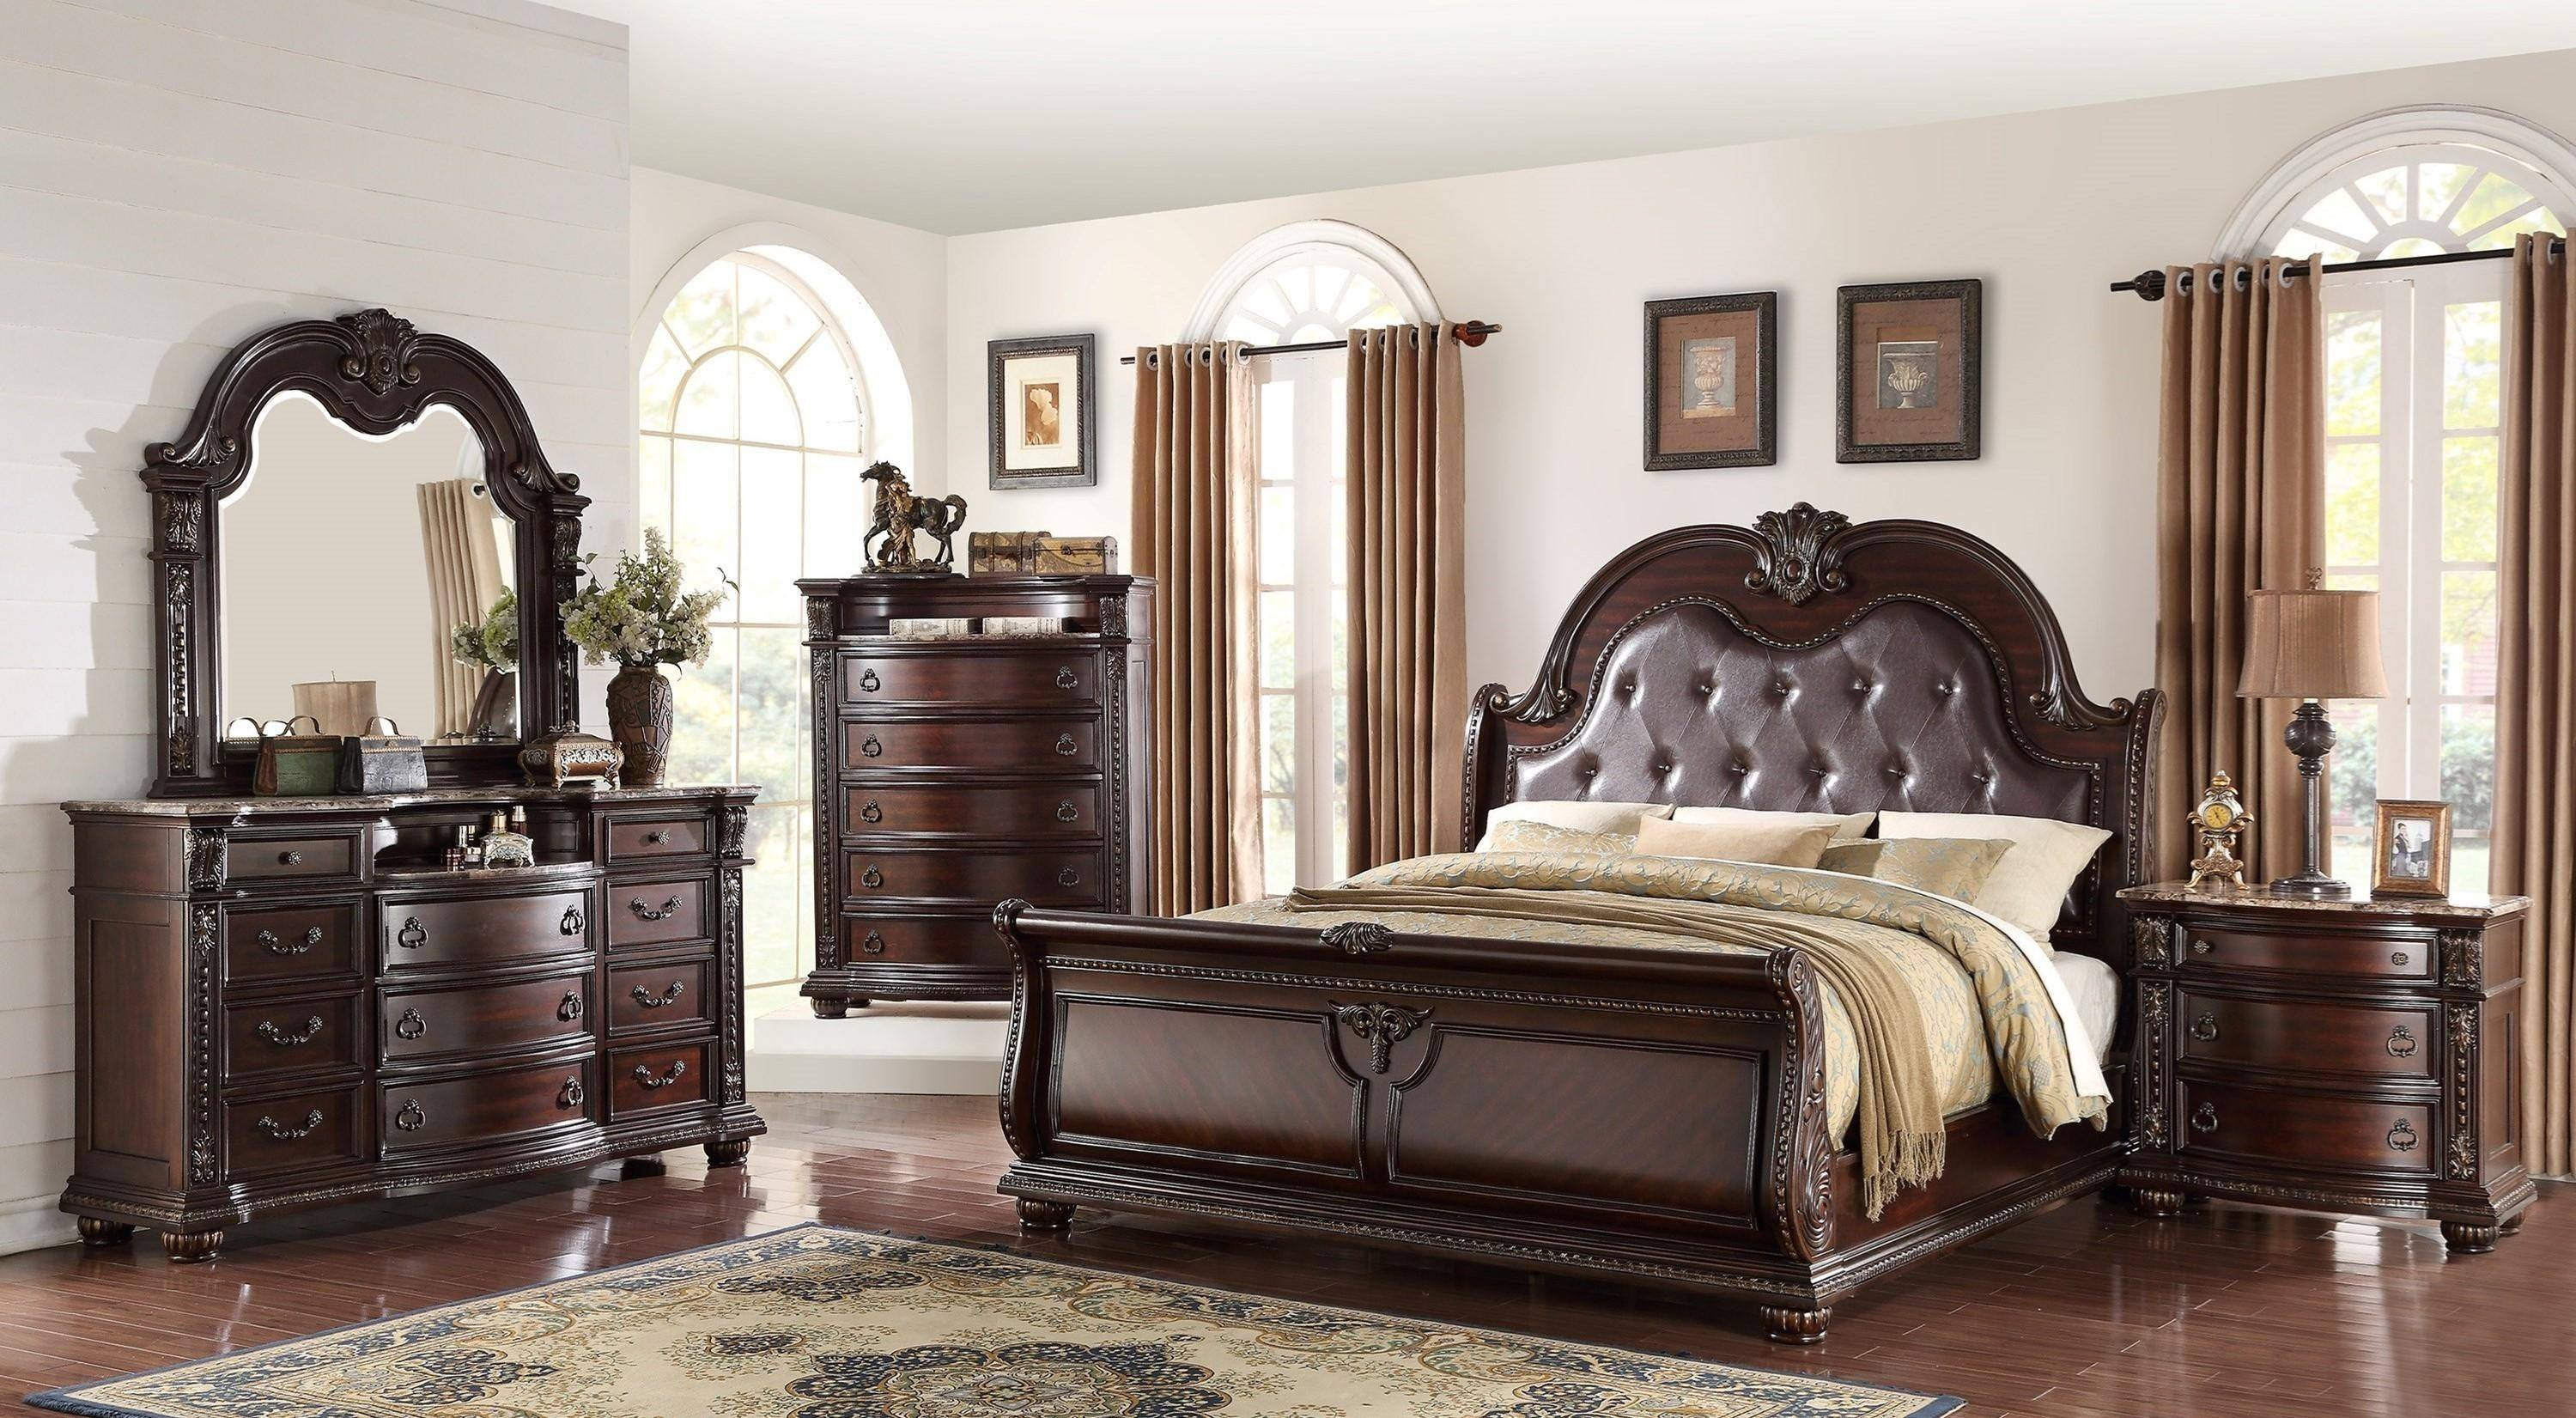 Solid Oak Bedroom Set Beautiful Crown Mark B1600 Stanley Cherry Finish solid Wood King